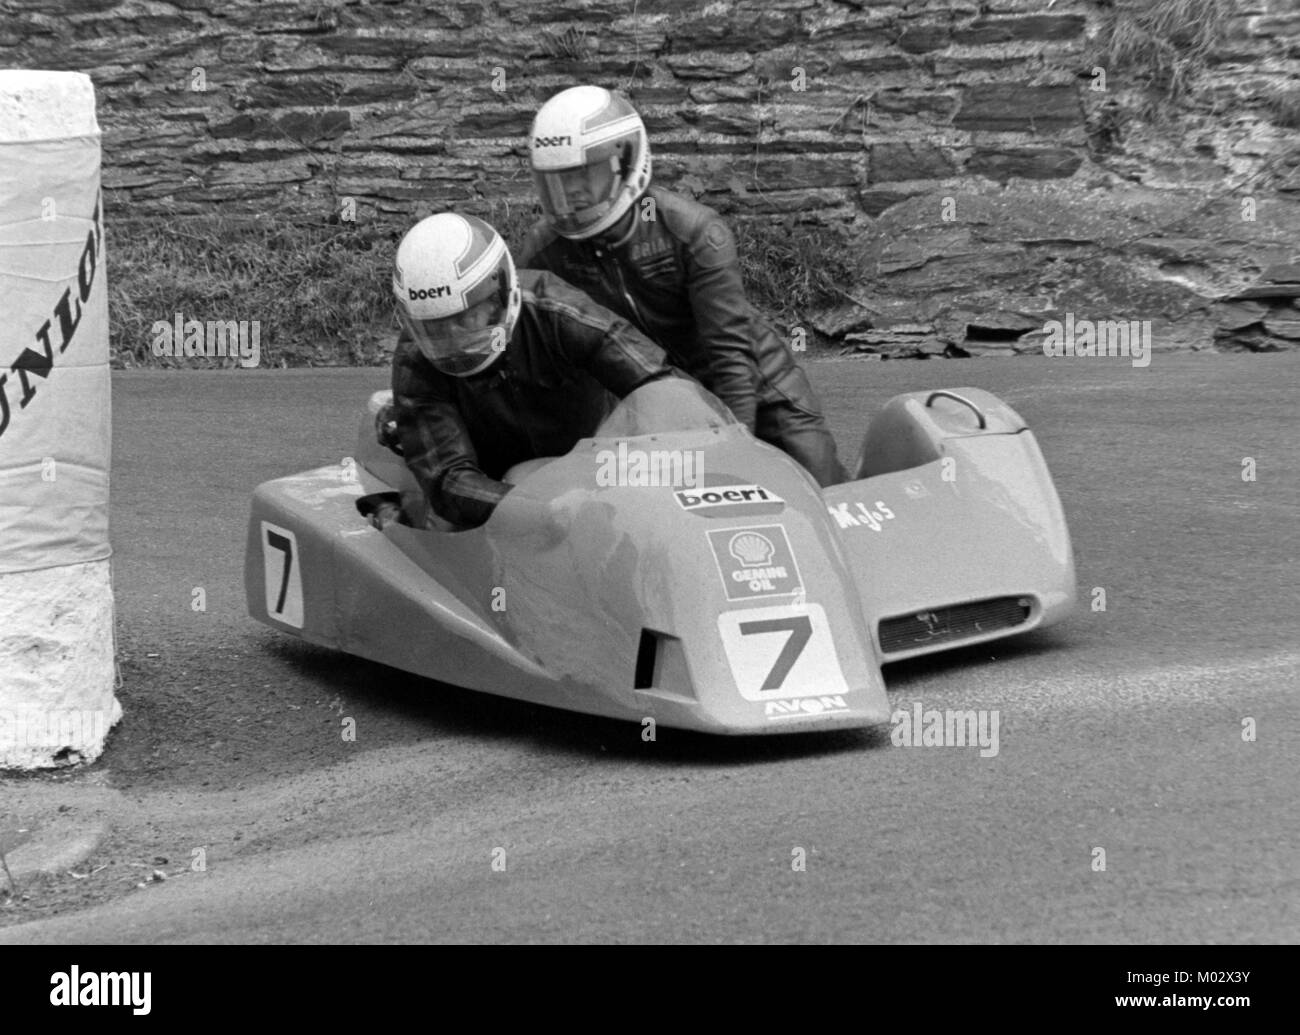 Derek Plummer and Brian Harris, Yamaha, sidecar race B,TT June 1988, Isle of Man Stock Photo